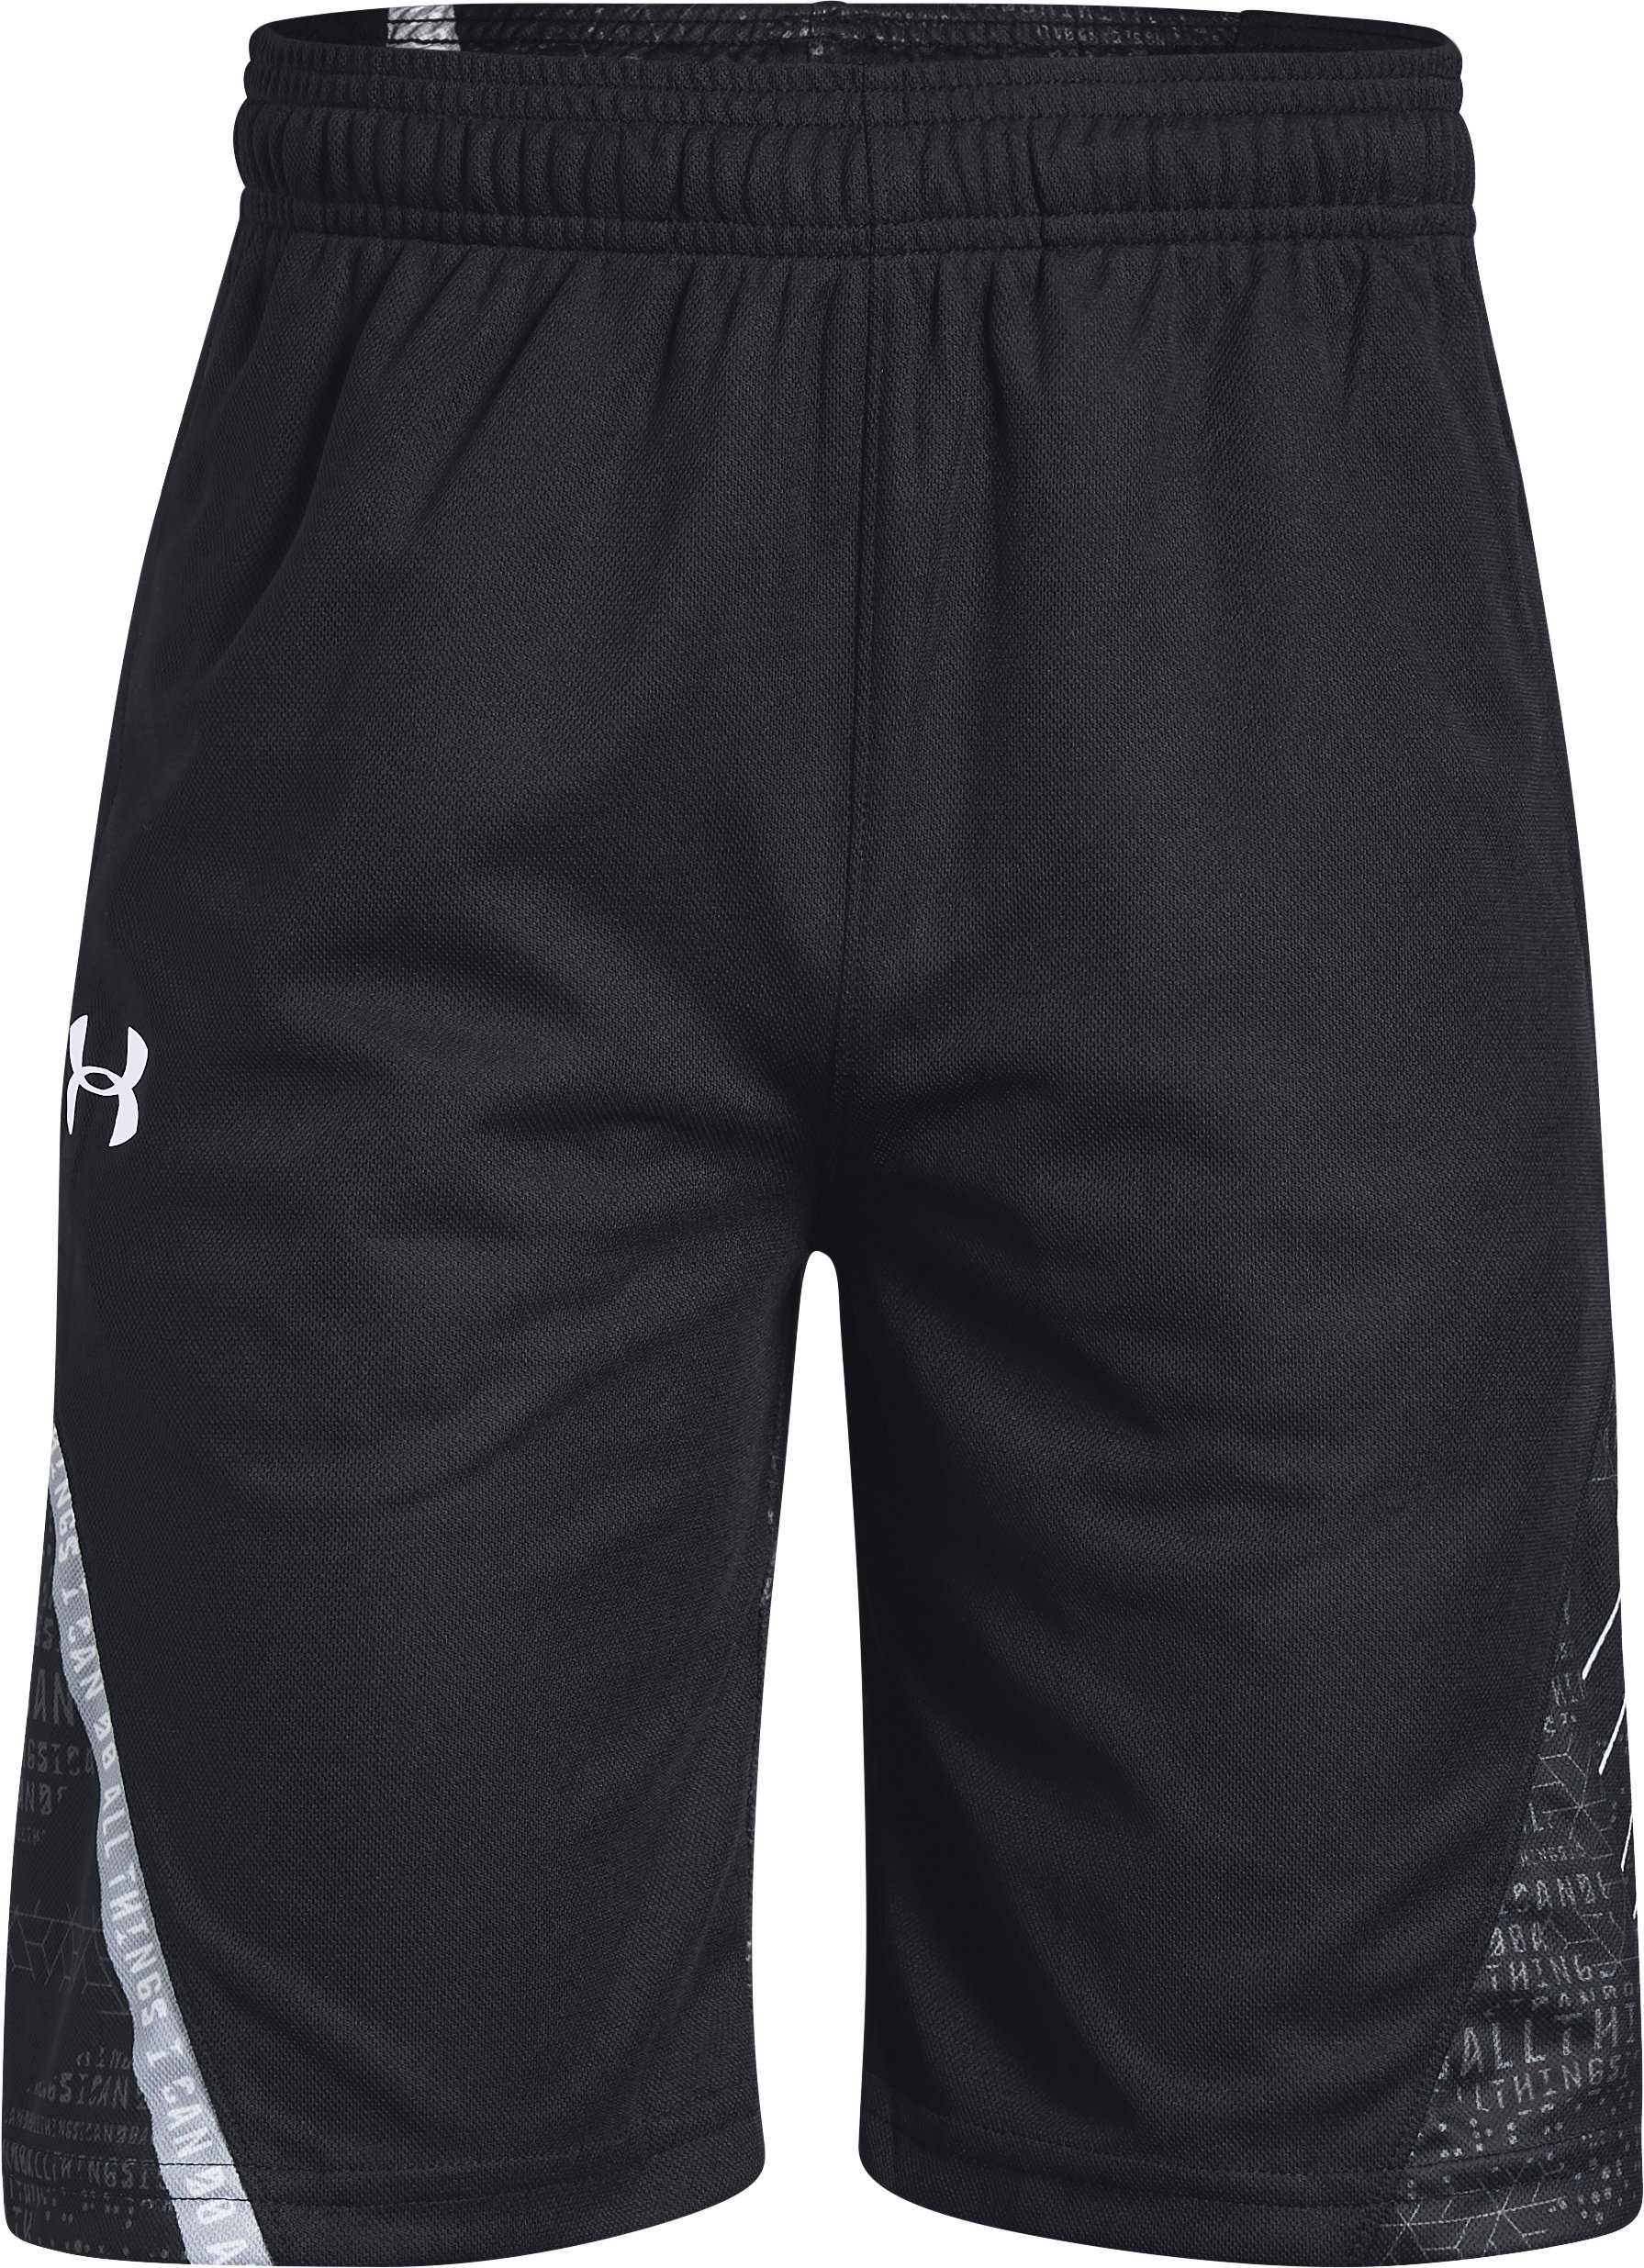 Boys' SC30 Shorts, Black